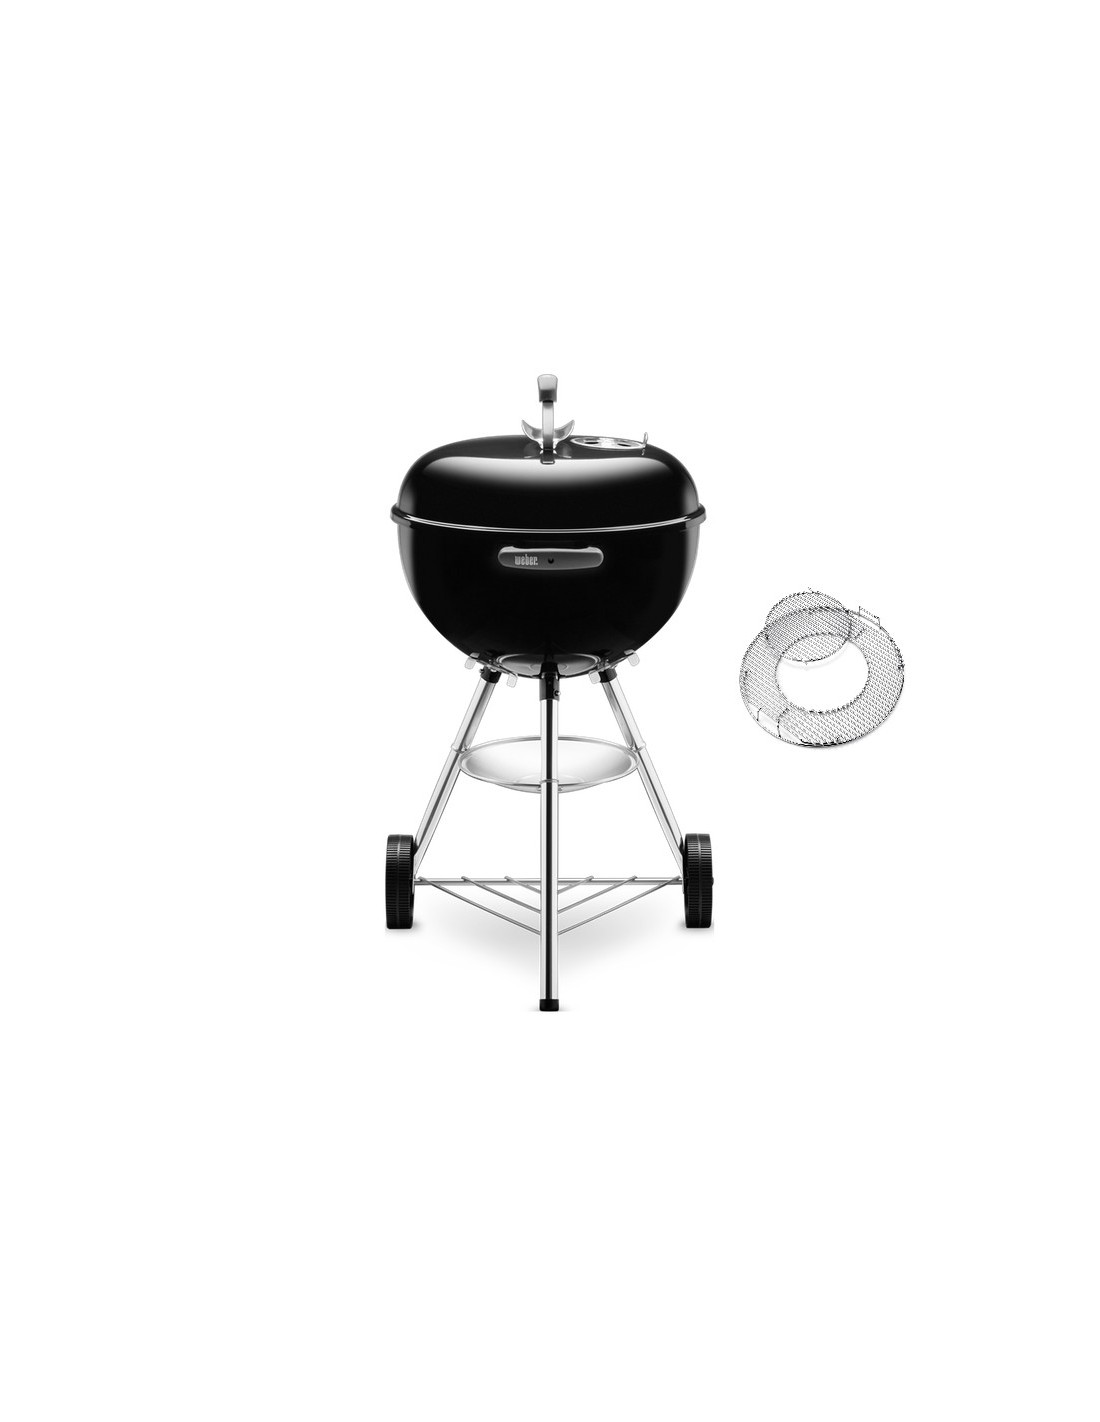 Barbecue charbon bar b kettle gbs charcoal grill 47cm weber - Poulet barbecue weber ...